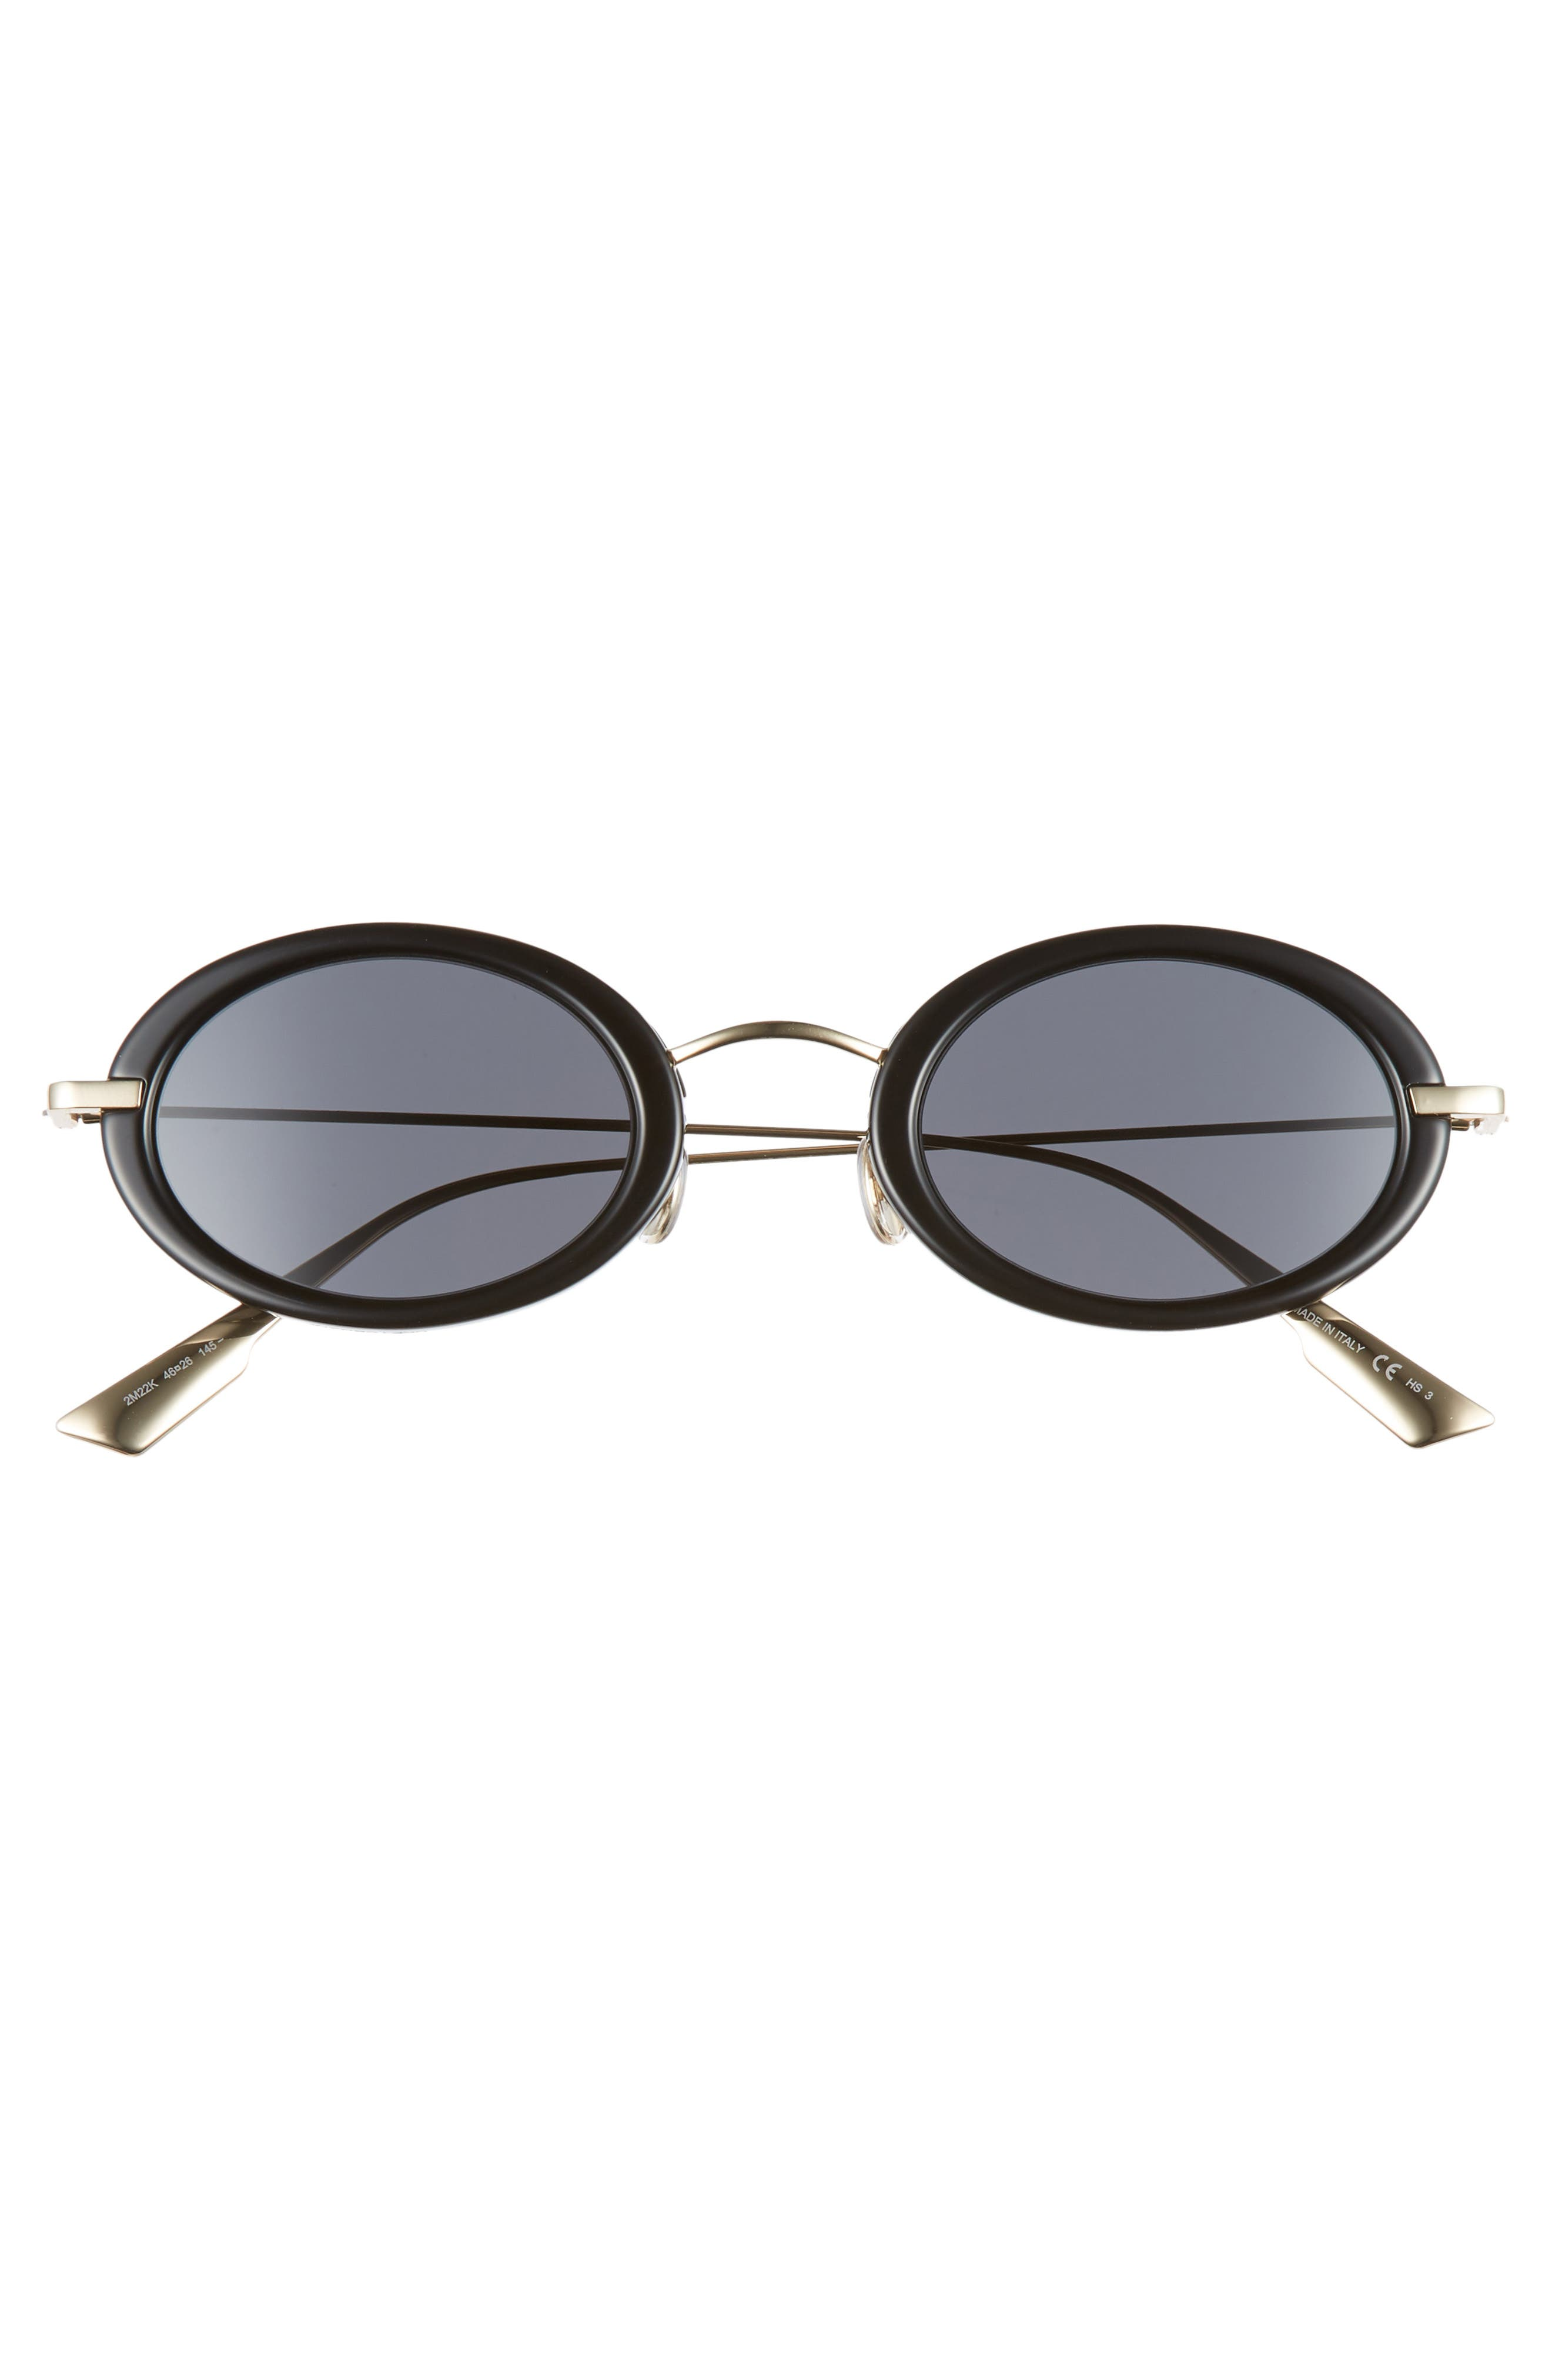 Christian Dior Hypnotic2 46mm Round Sunglasses,                             Alternate thumbnail 3, color,                             BLACK/ ANTIREFLECTIVE/ GOLD